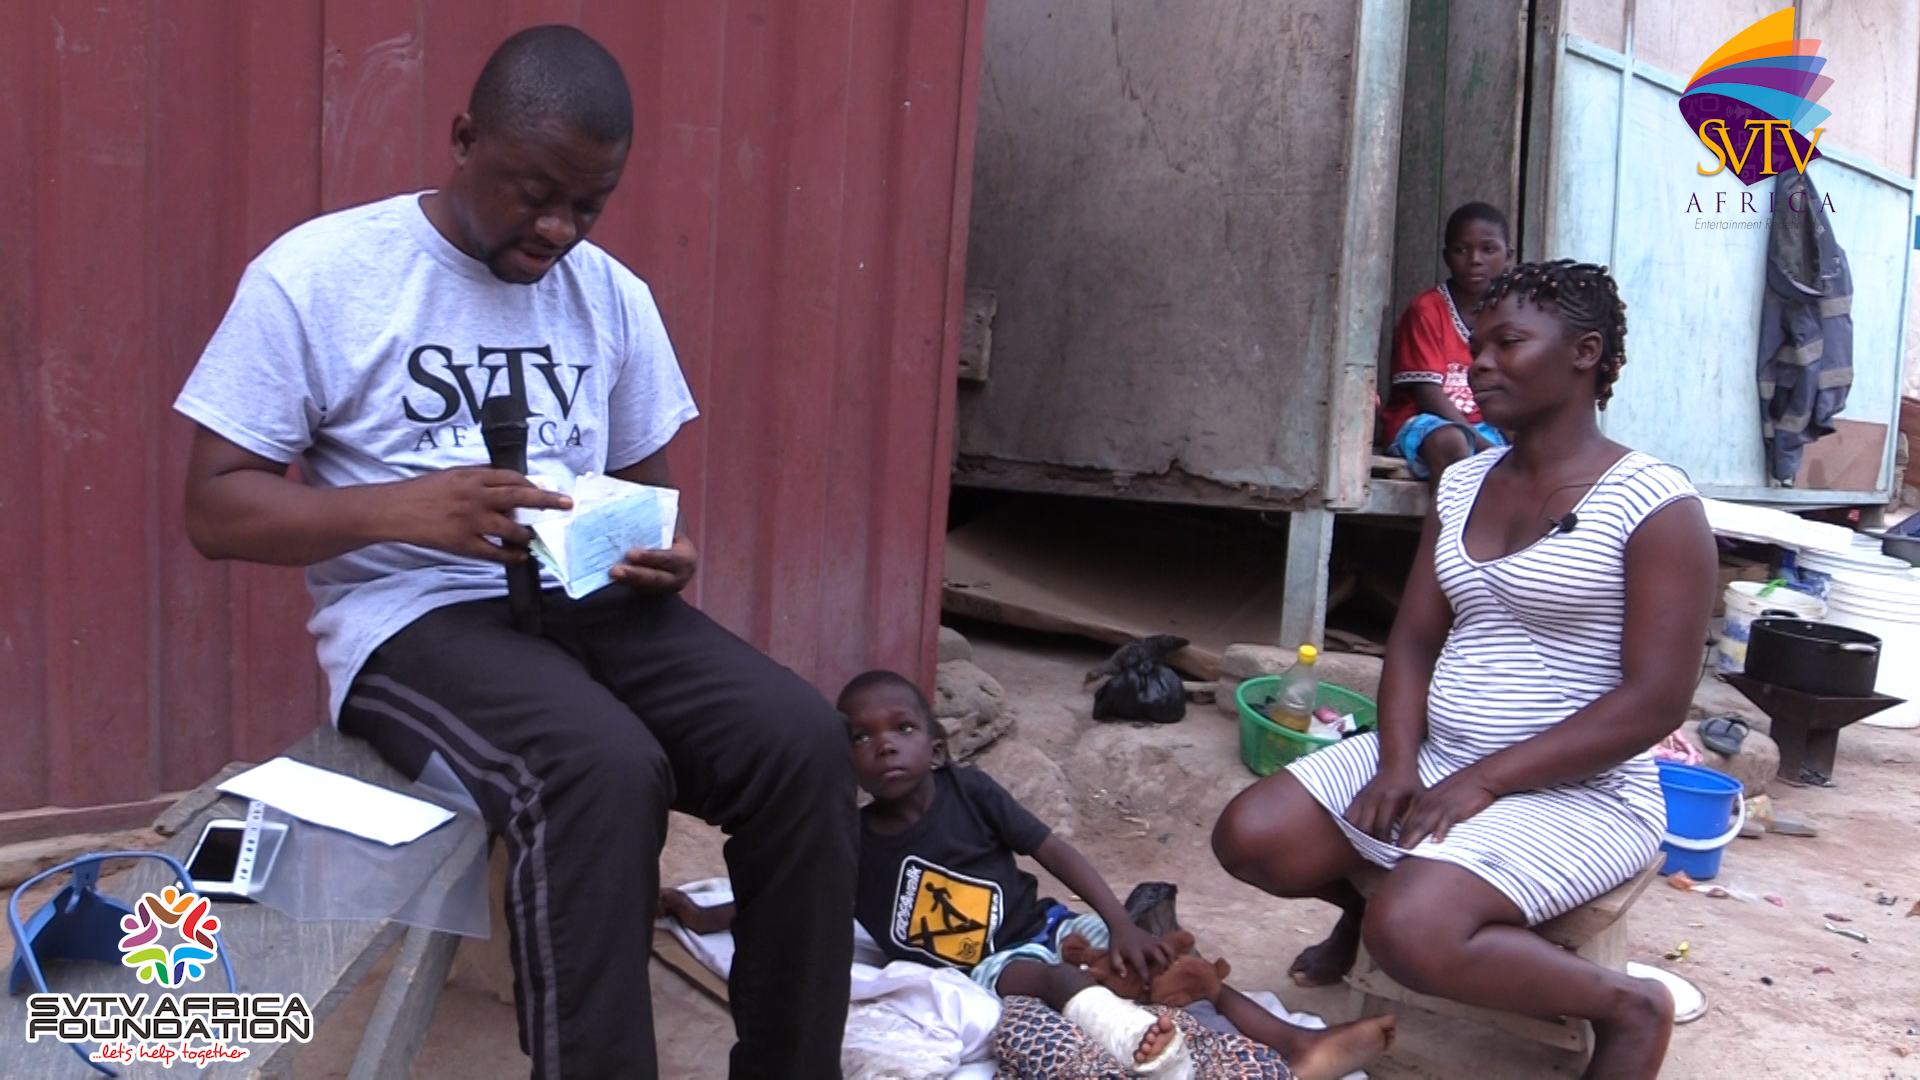 5-Year-Old Boy's Successful Surgery Which Cost 5,300gh Covered By SVTV Africa Foundation